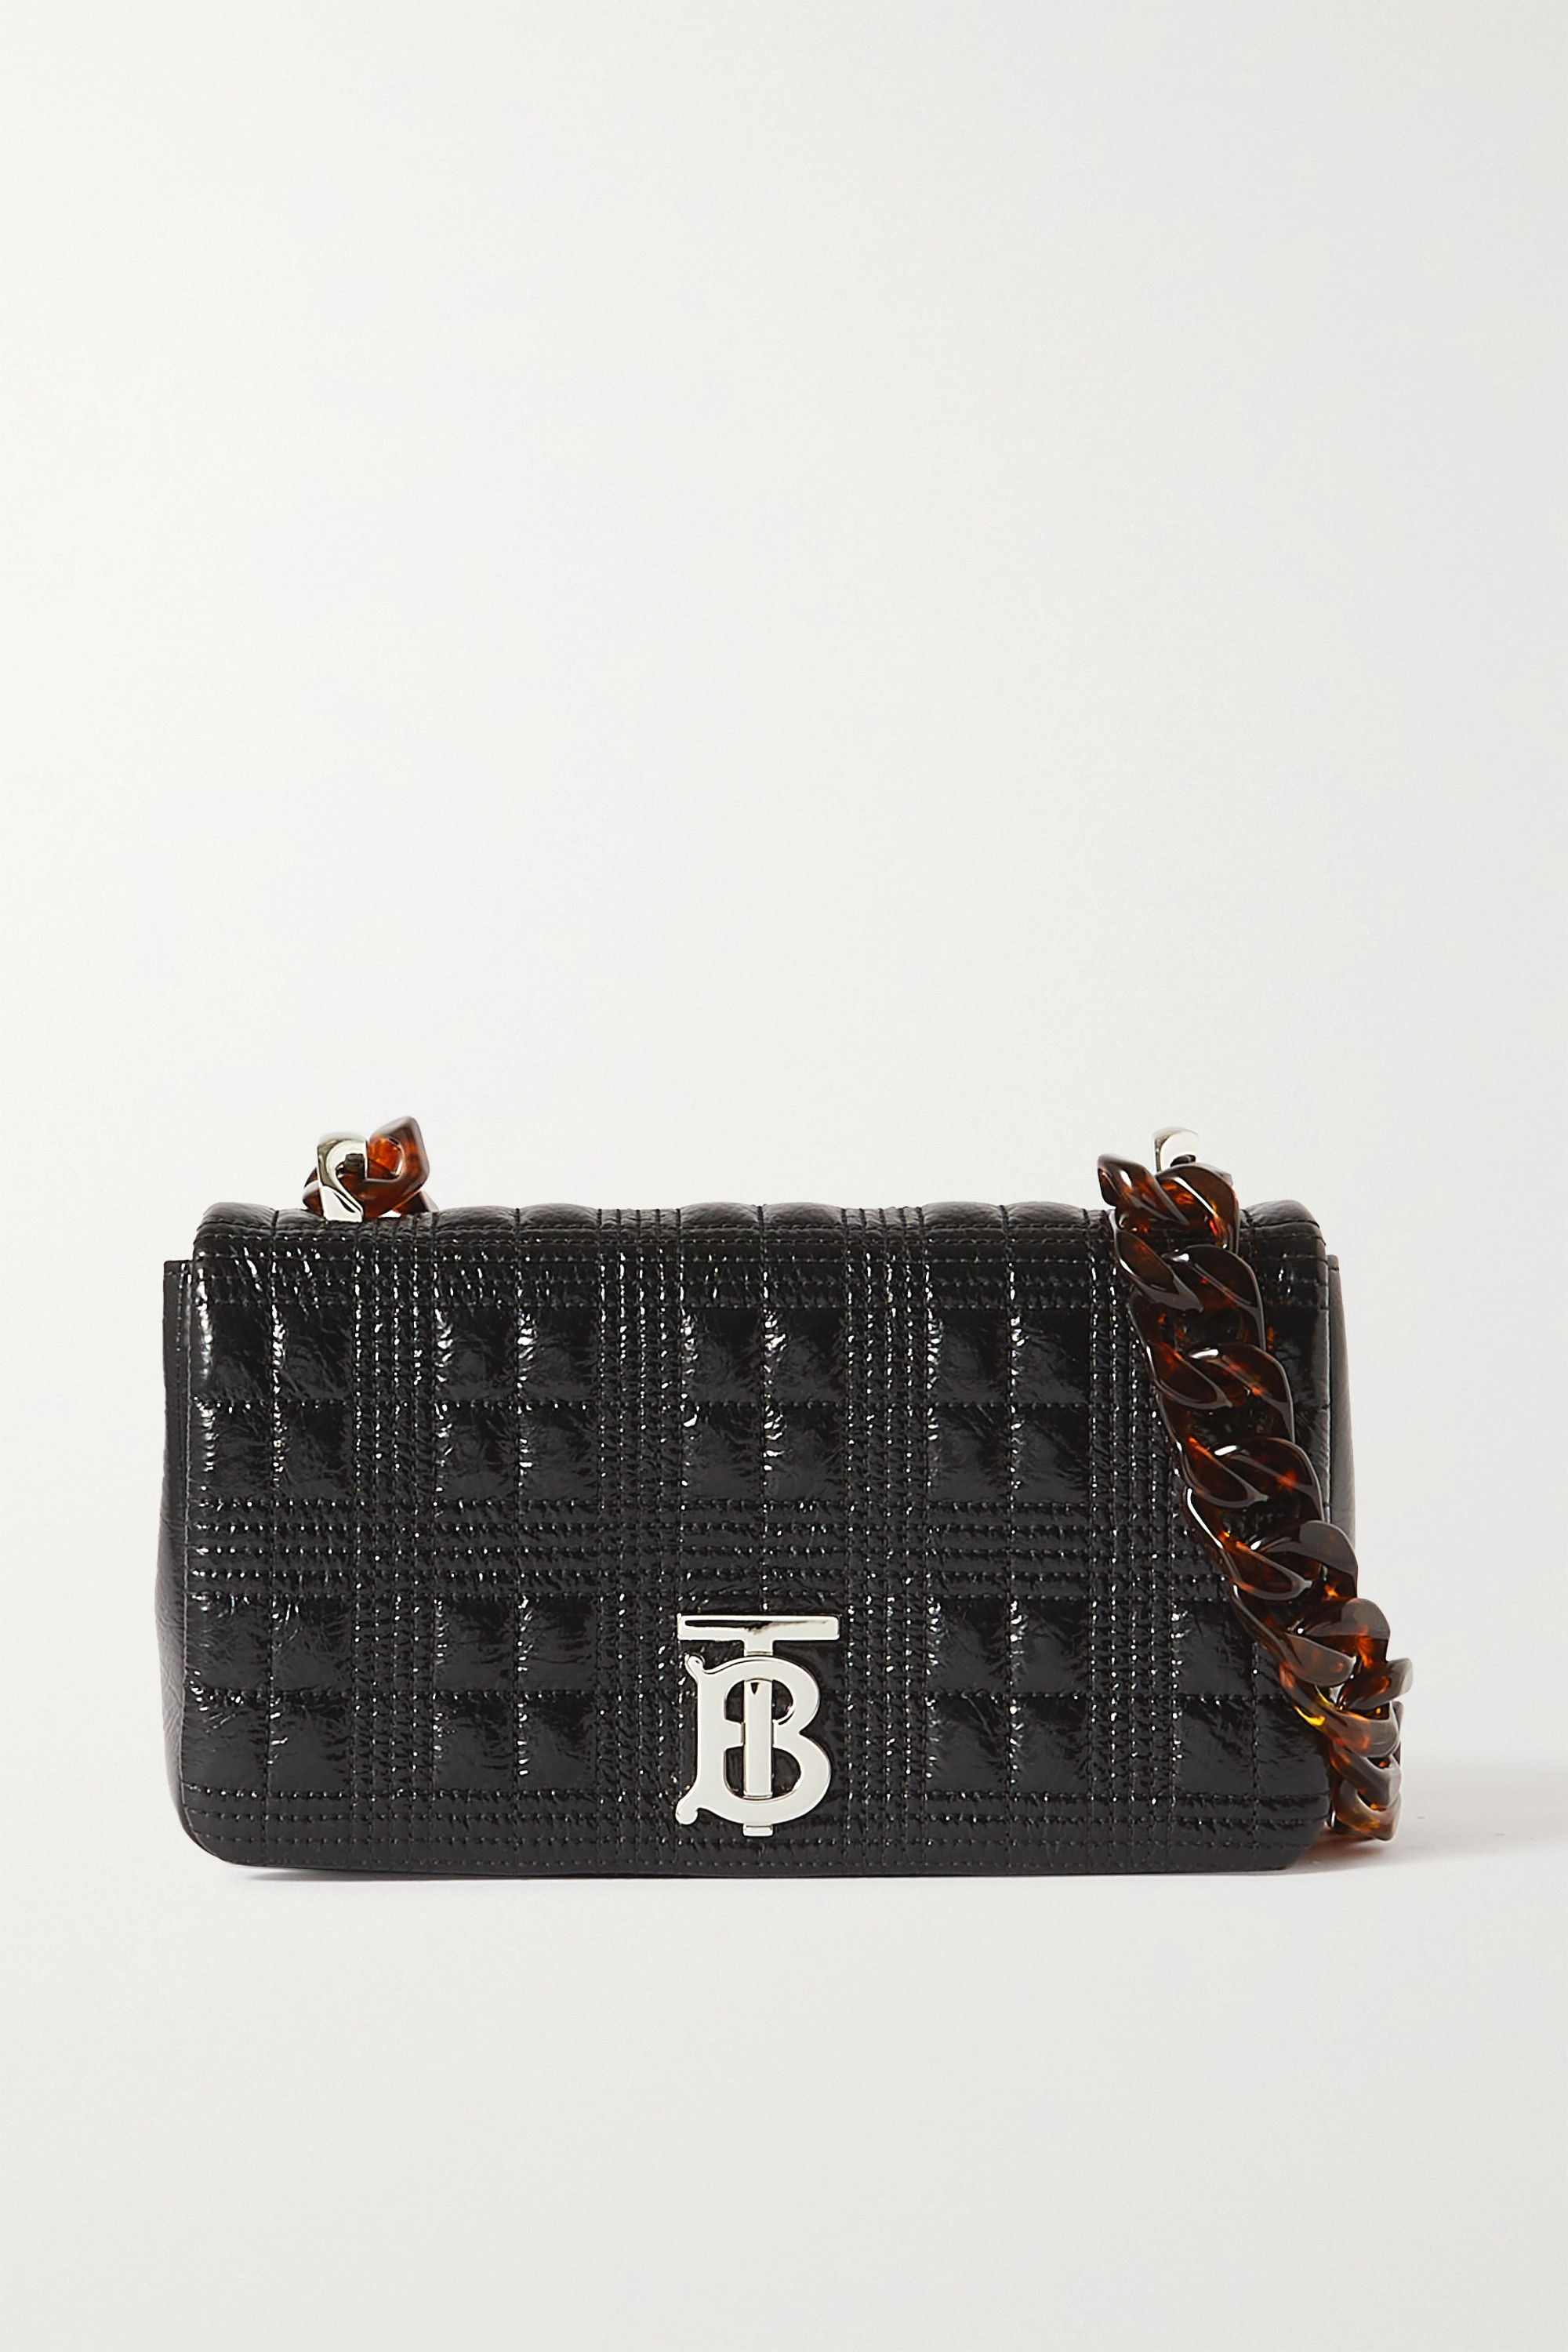 Burberry Small quilted glossed-leather and tortoiseshell resin shoulder bag